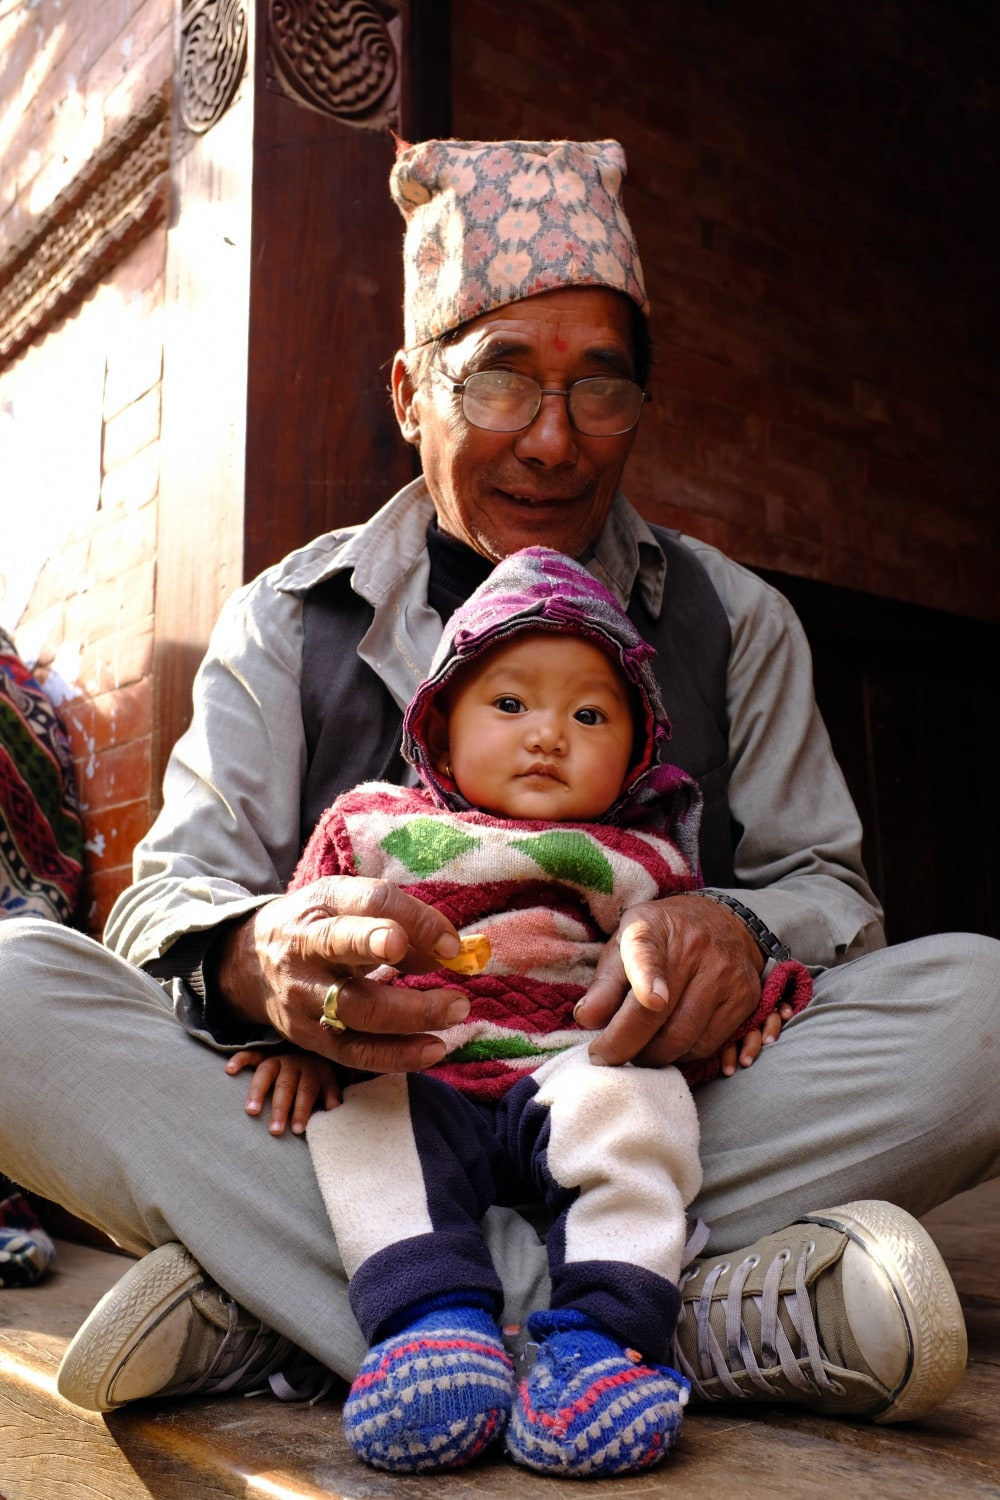 A man with his grandchild in Bhaktapur, Nepal